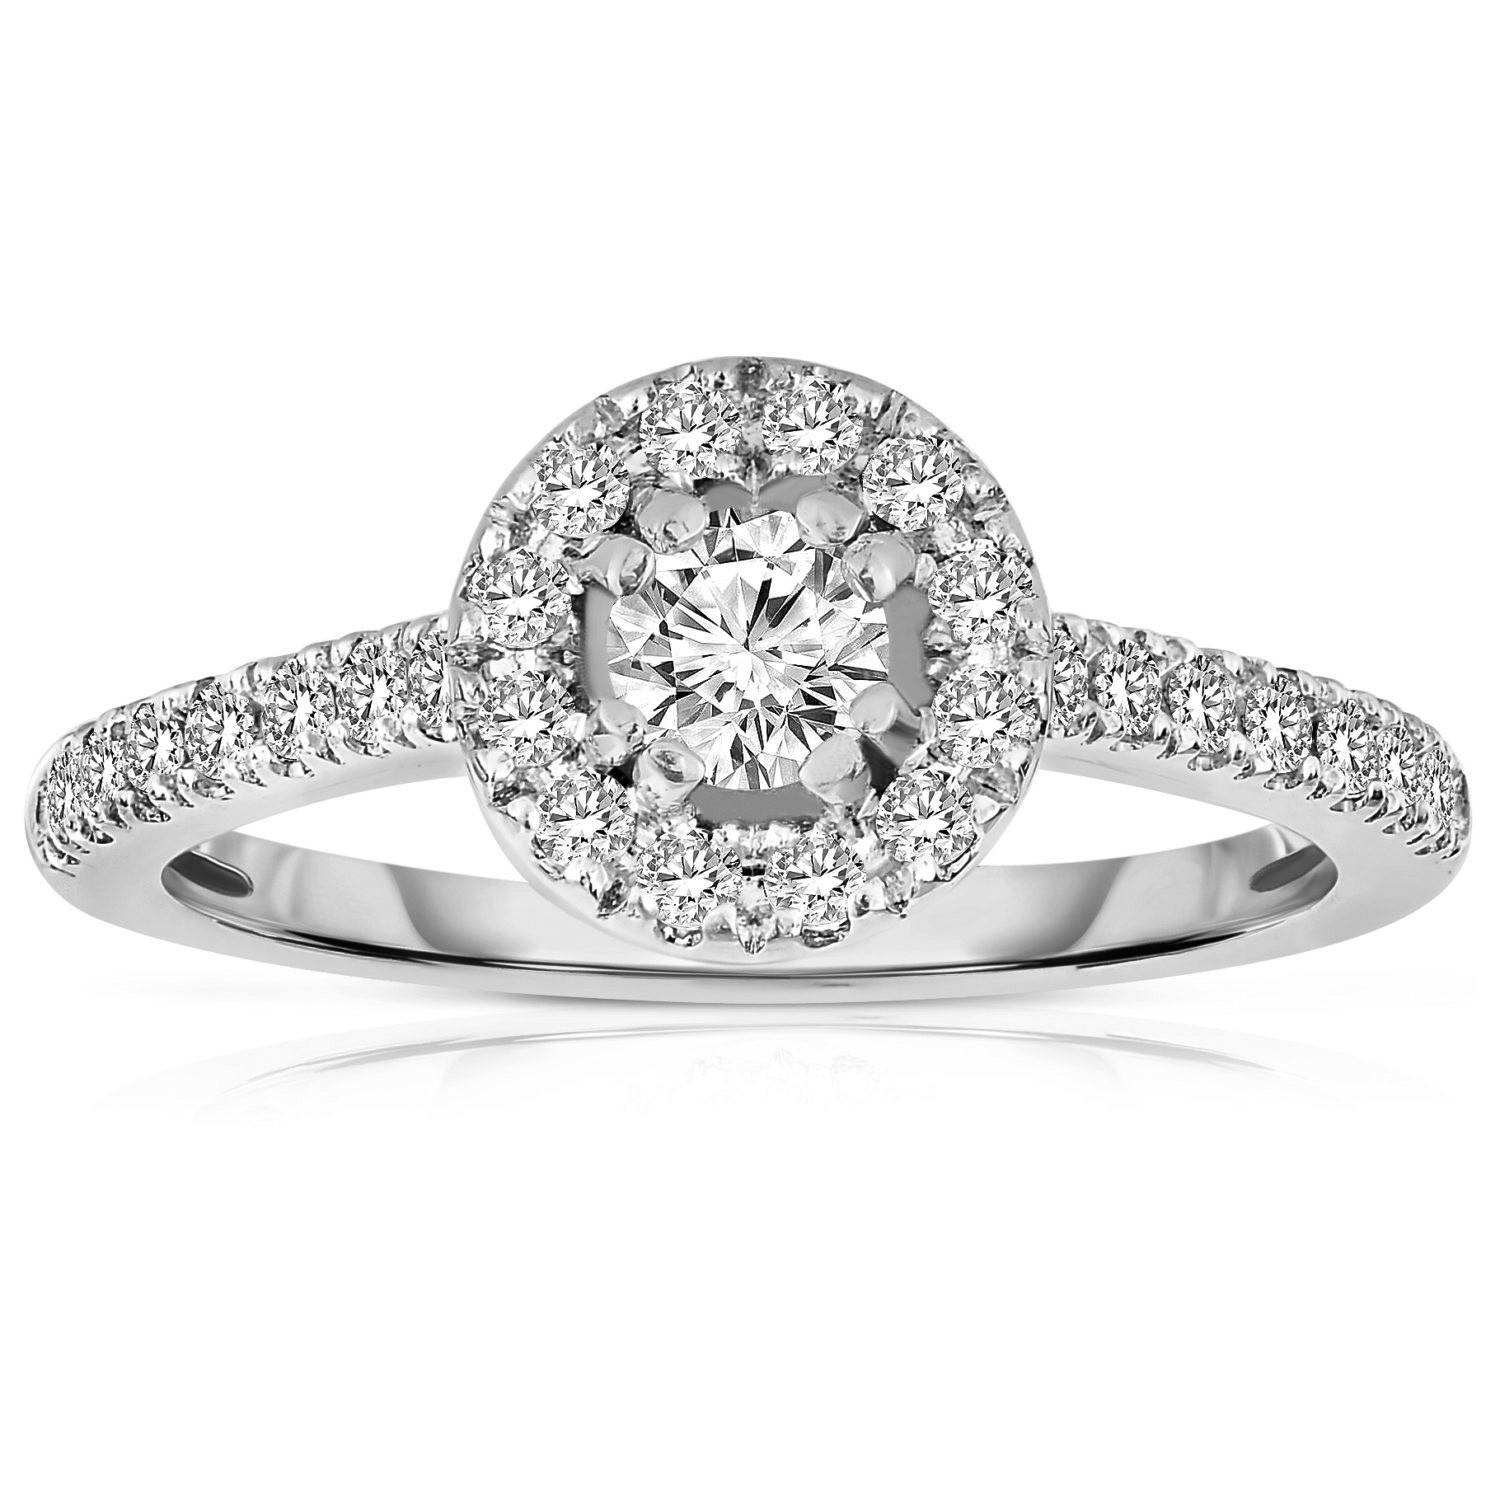 Engagement Rings Under 500 | Diamond Engagement Rings Under $500 Within Diamond Engagement Rings Under  (View 14 of 15)